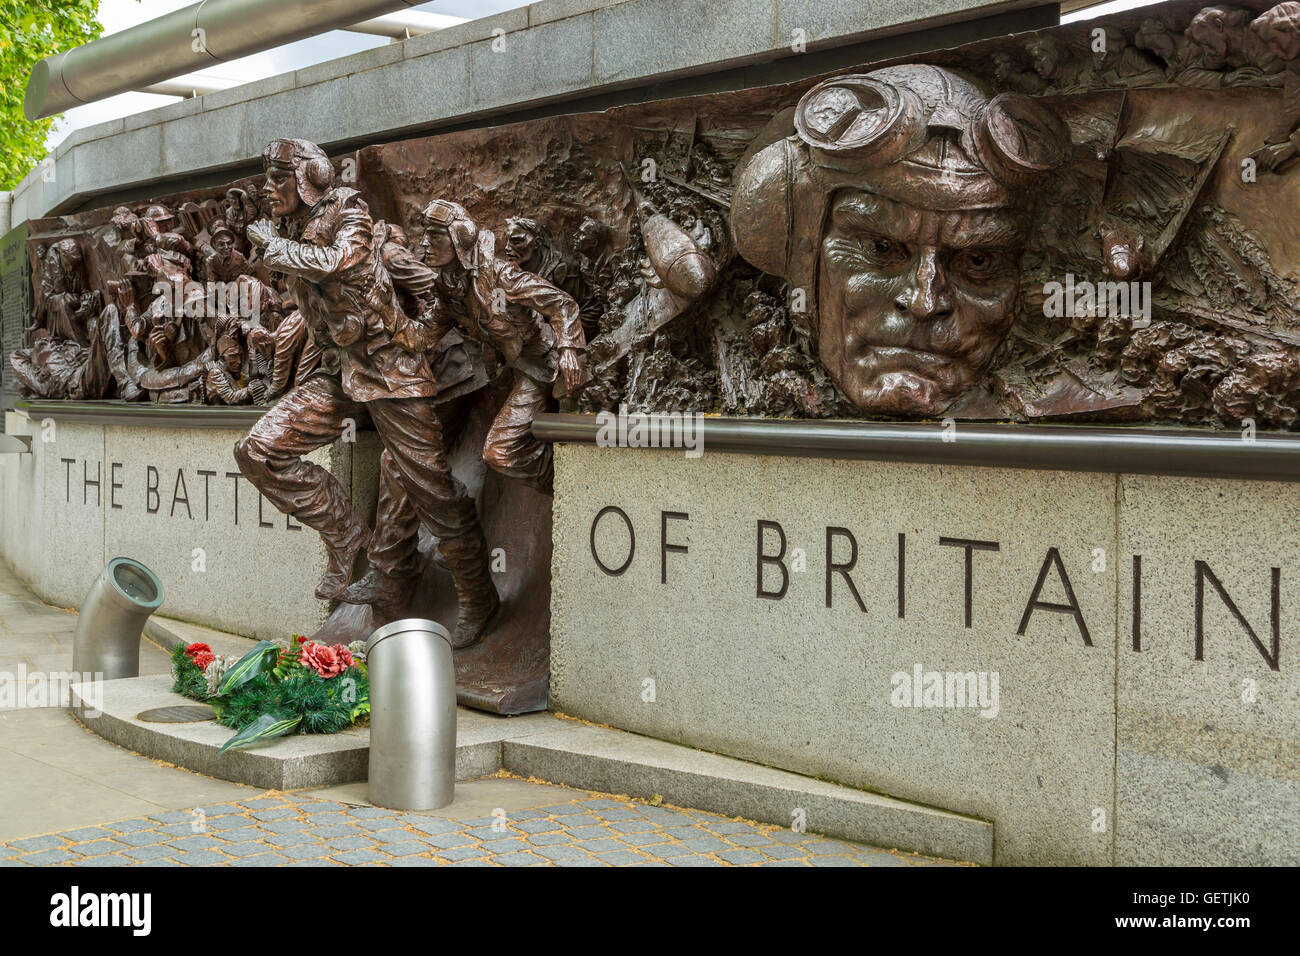 The Battle of Britain memorial on the Victoria Embankment in London. - Stock Image